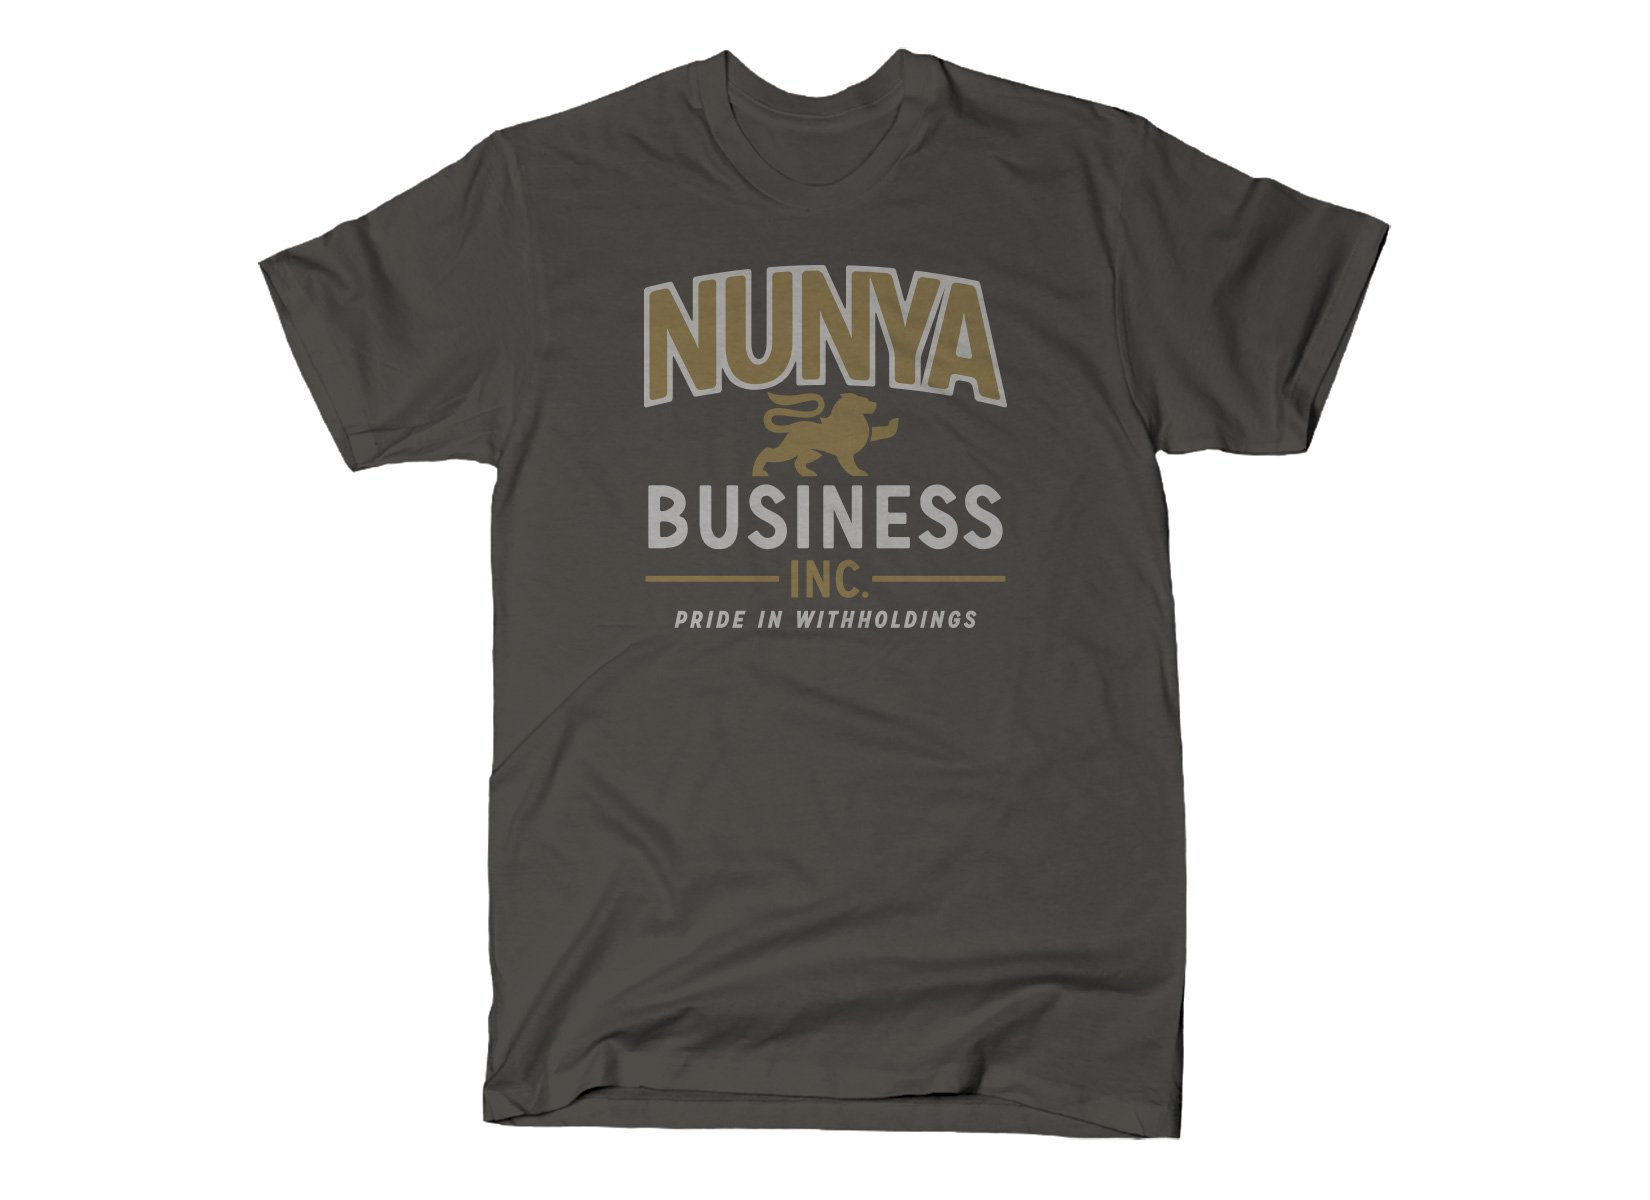 Nunya Business on Mens T-Shirt